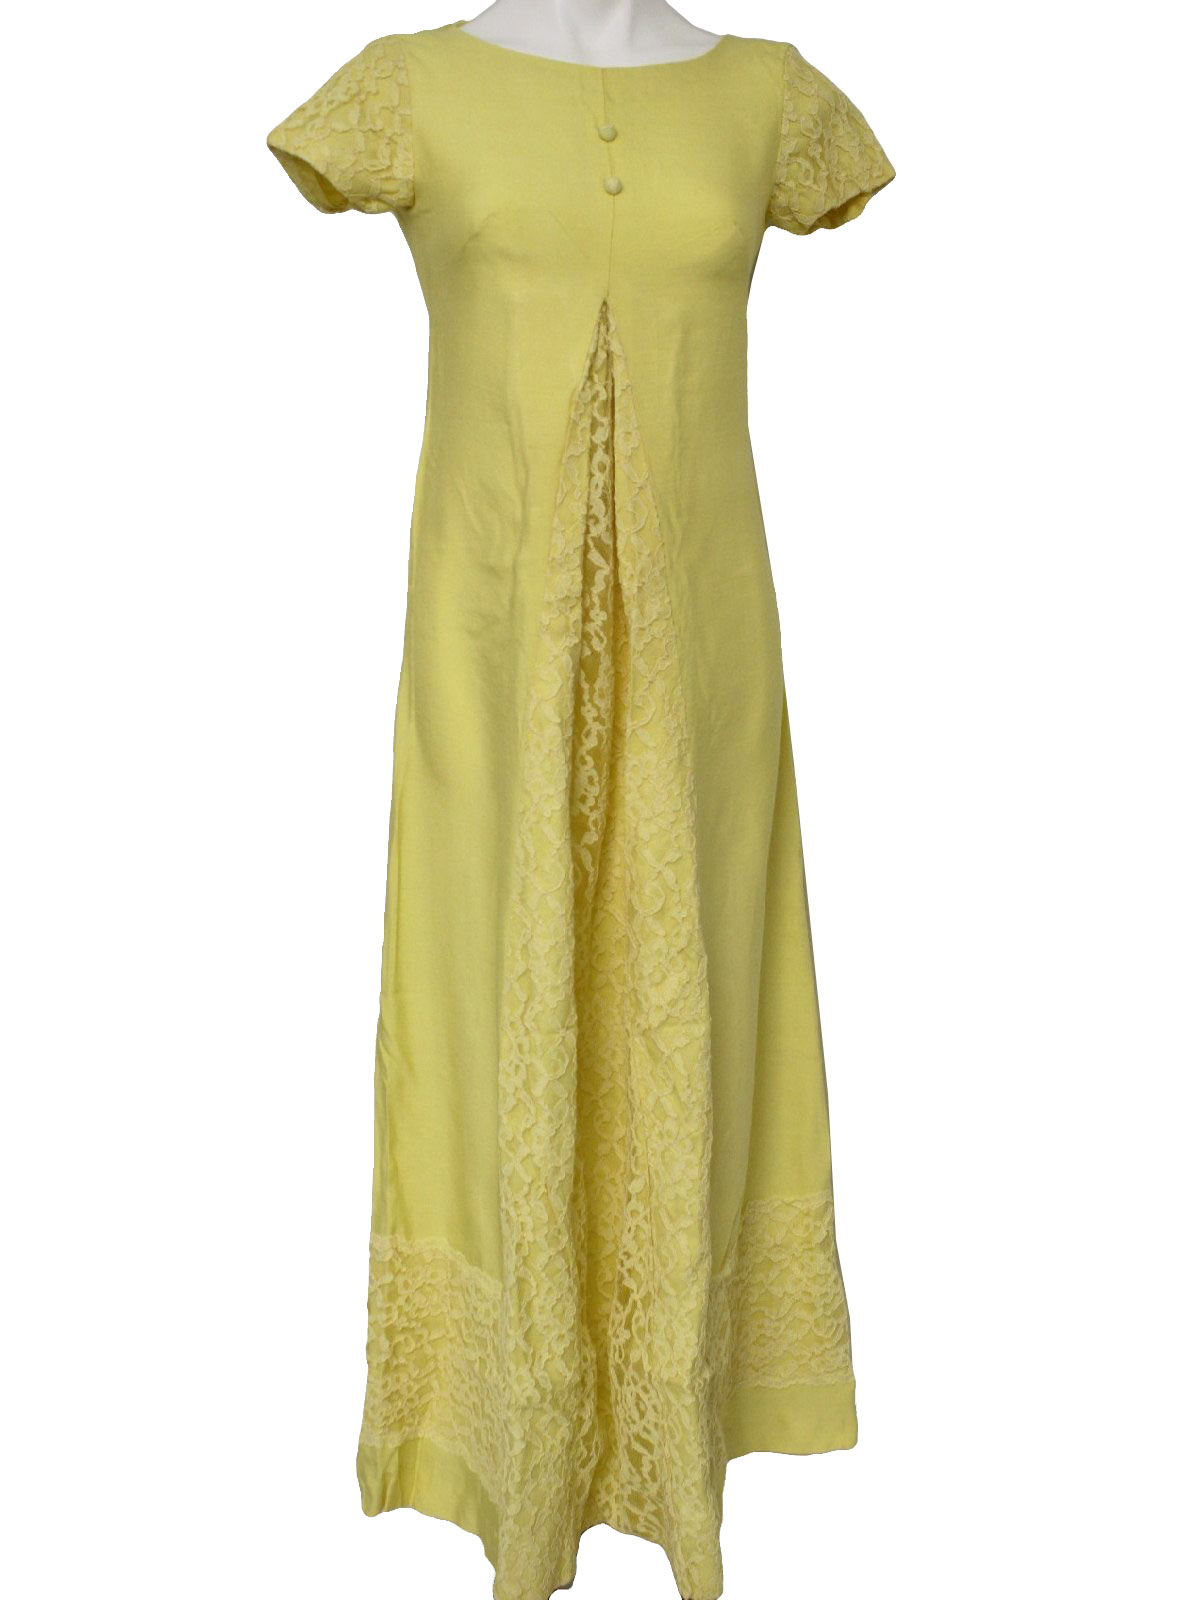 Vintage 1960s dress 60s home sewn womens sunshine yellow vintage 1960s dress 60s home sewn womens sunshine yellow cotton blend floor length mod style maternity cut a line dress with rounded neckline ombrellifo Image collections